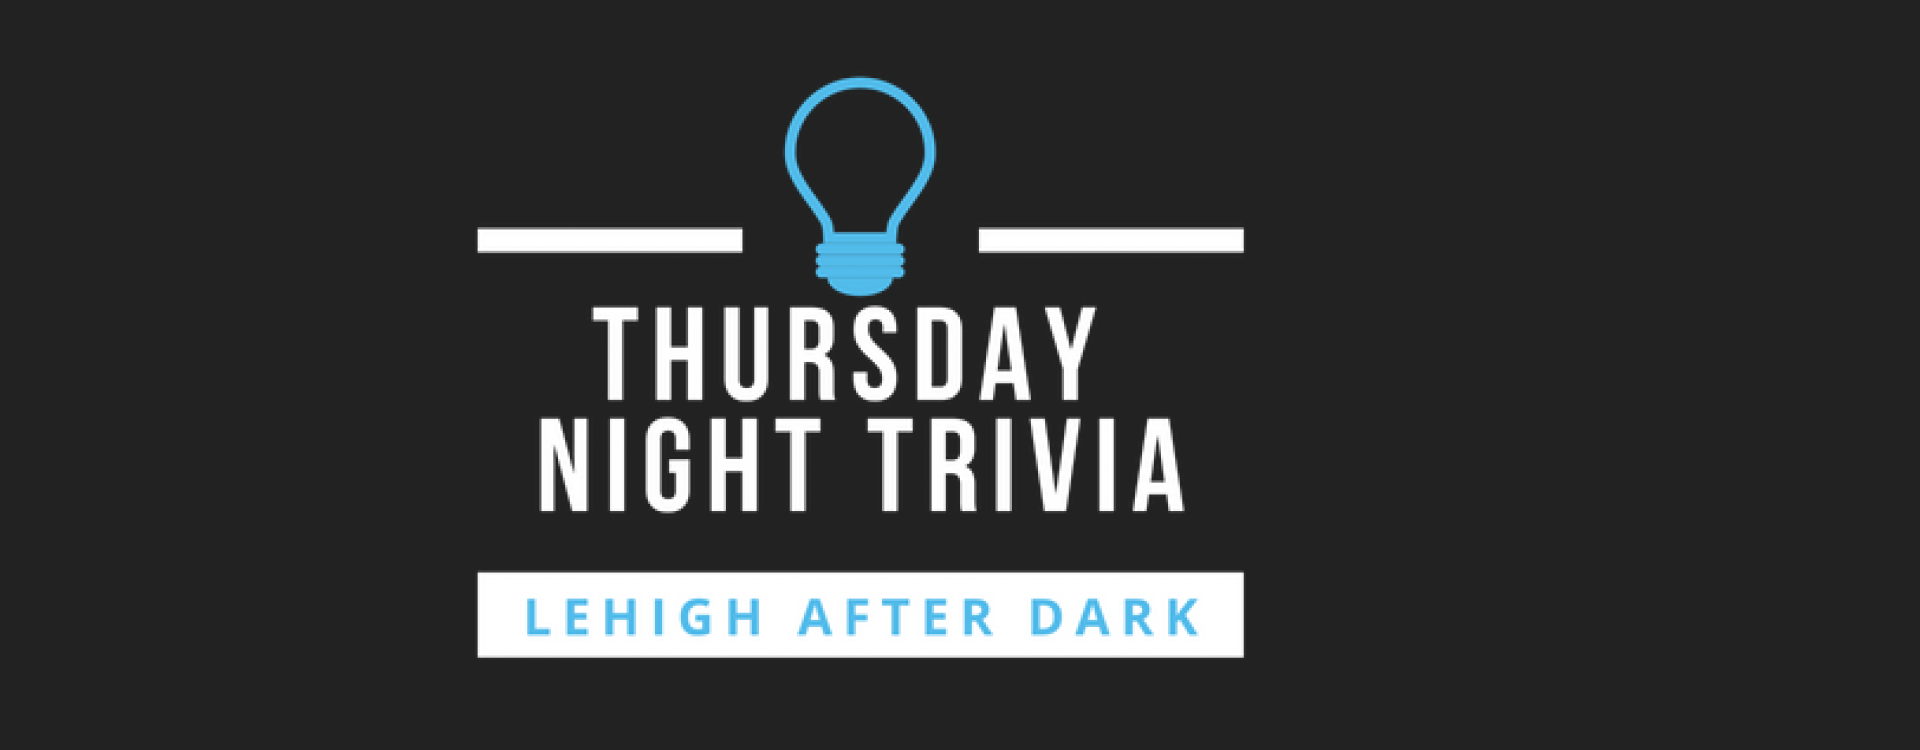 Trivia, Thursday nights @ Lamberton at 10pm